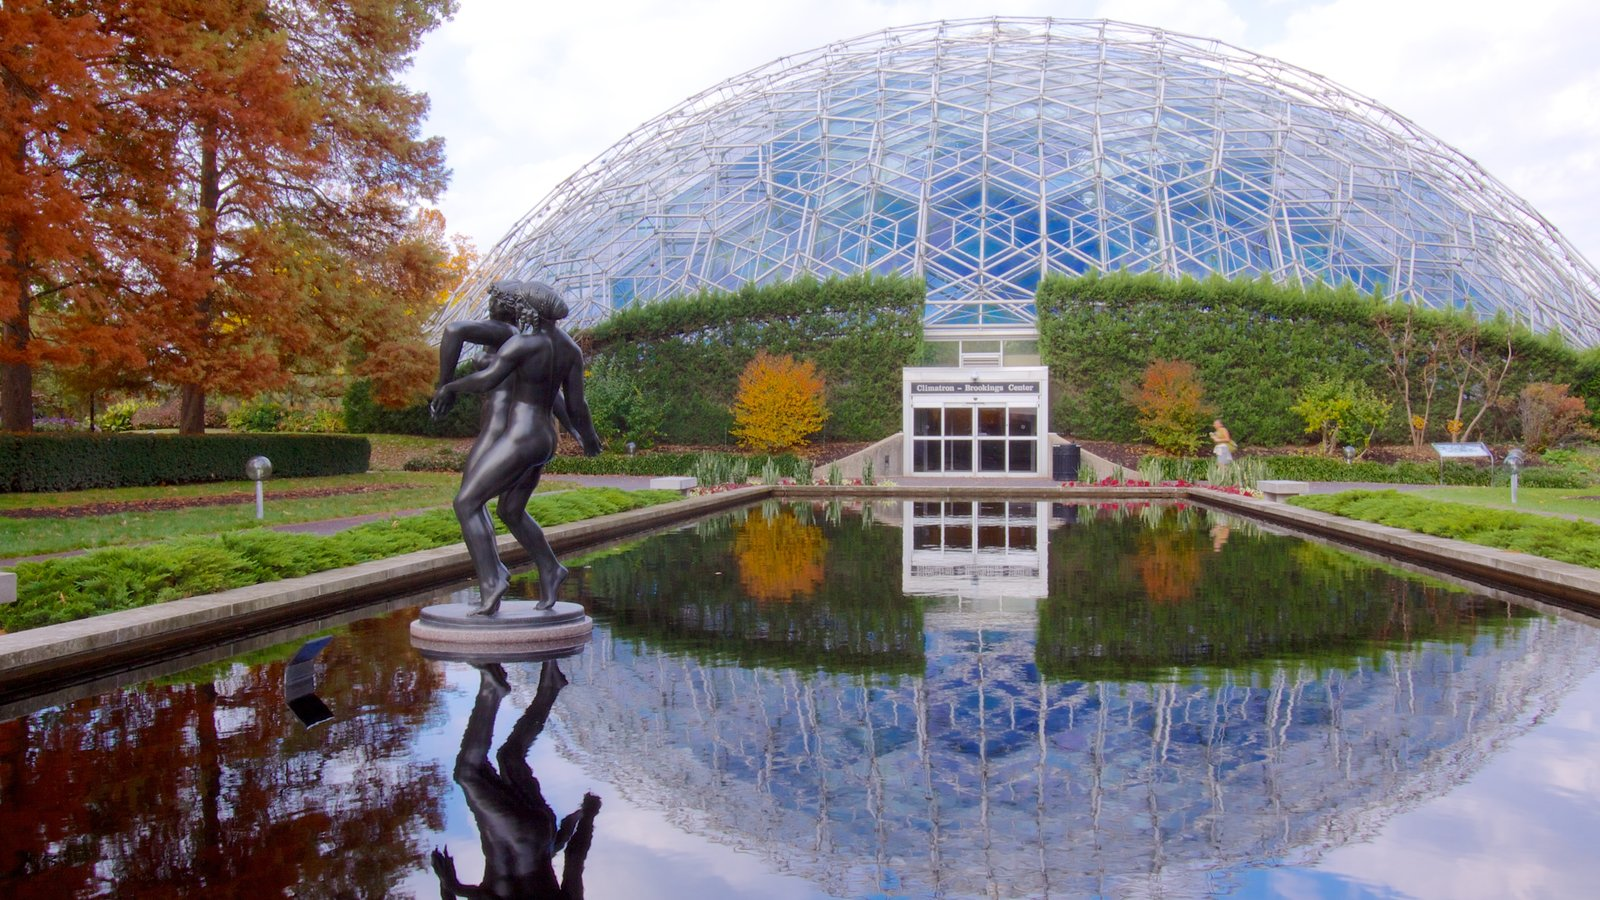 Missouri Botanical Gardens and Arboretum which includes modern architecture, fall colors and a statue or sculpture